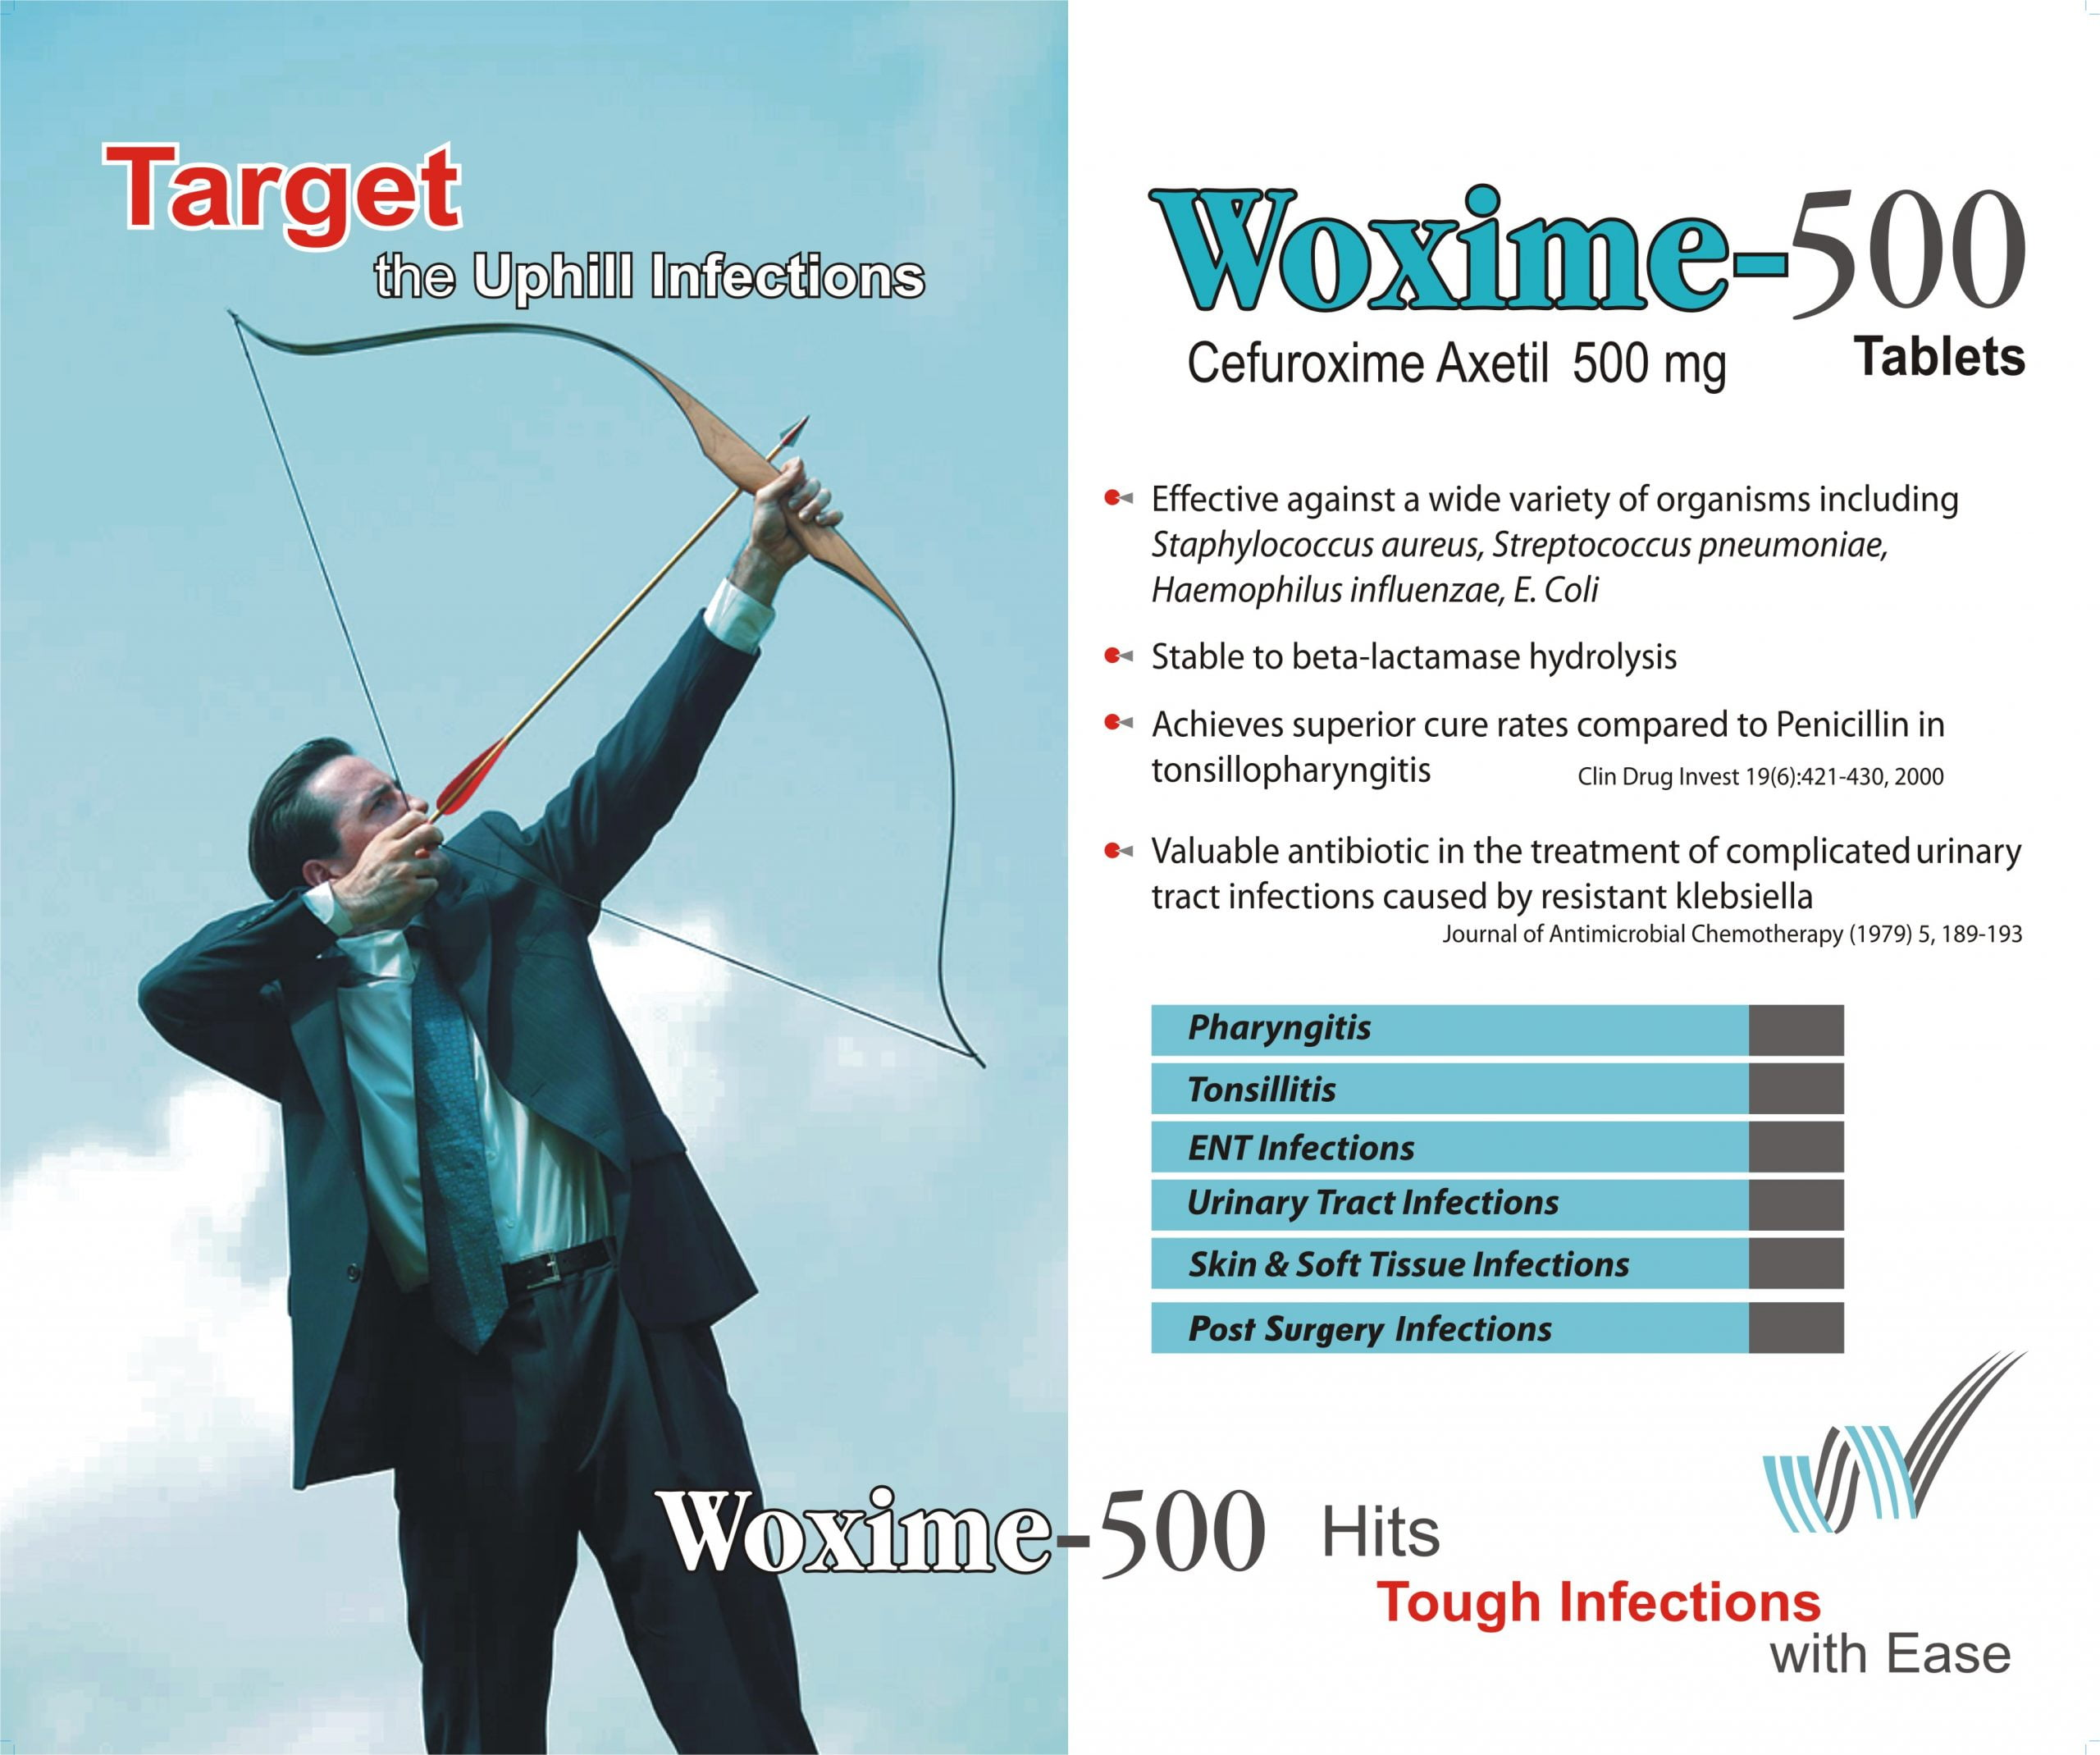 Woxime-500